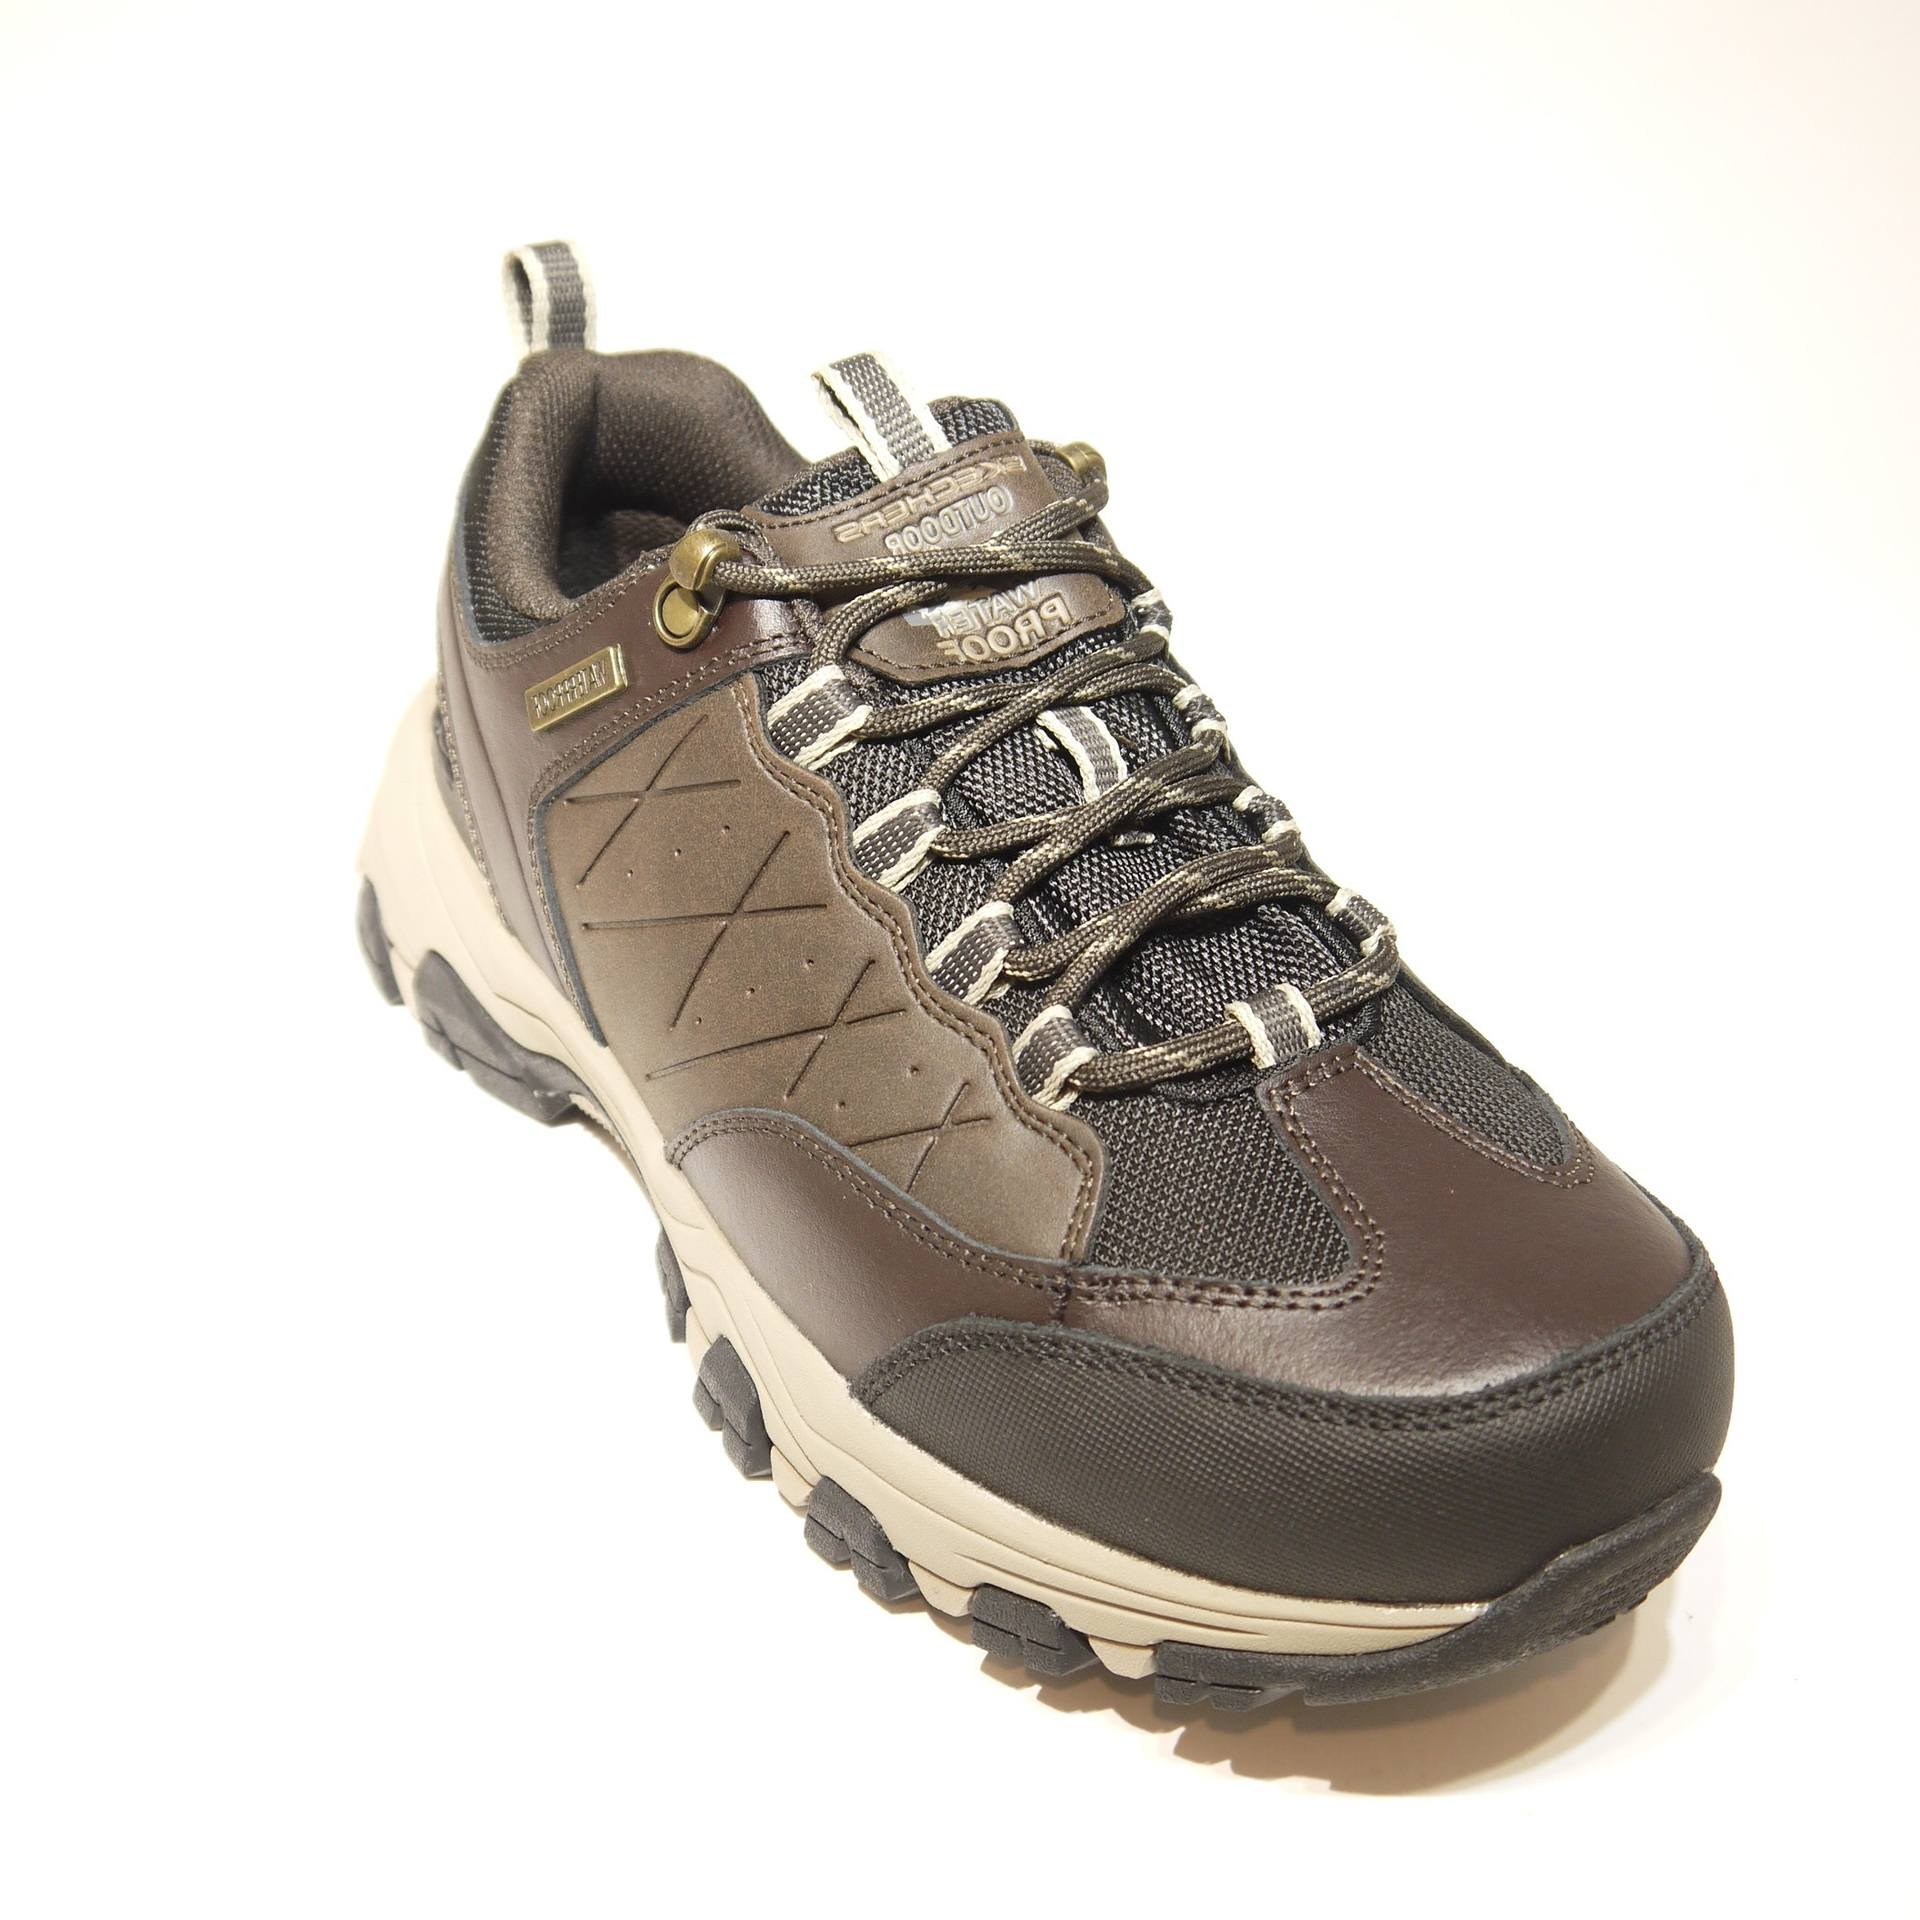 skechers relaxed fit mens shoes